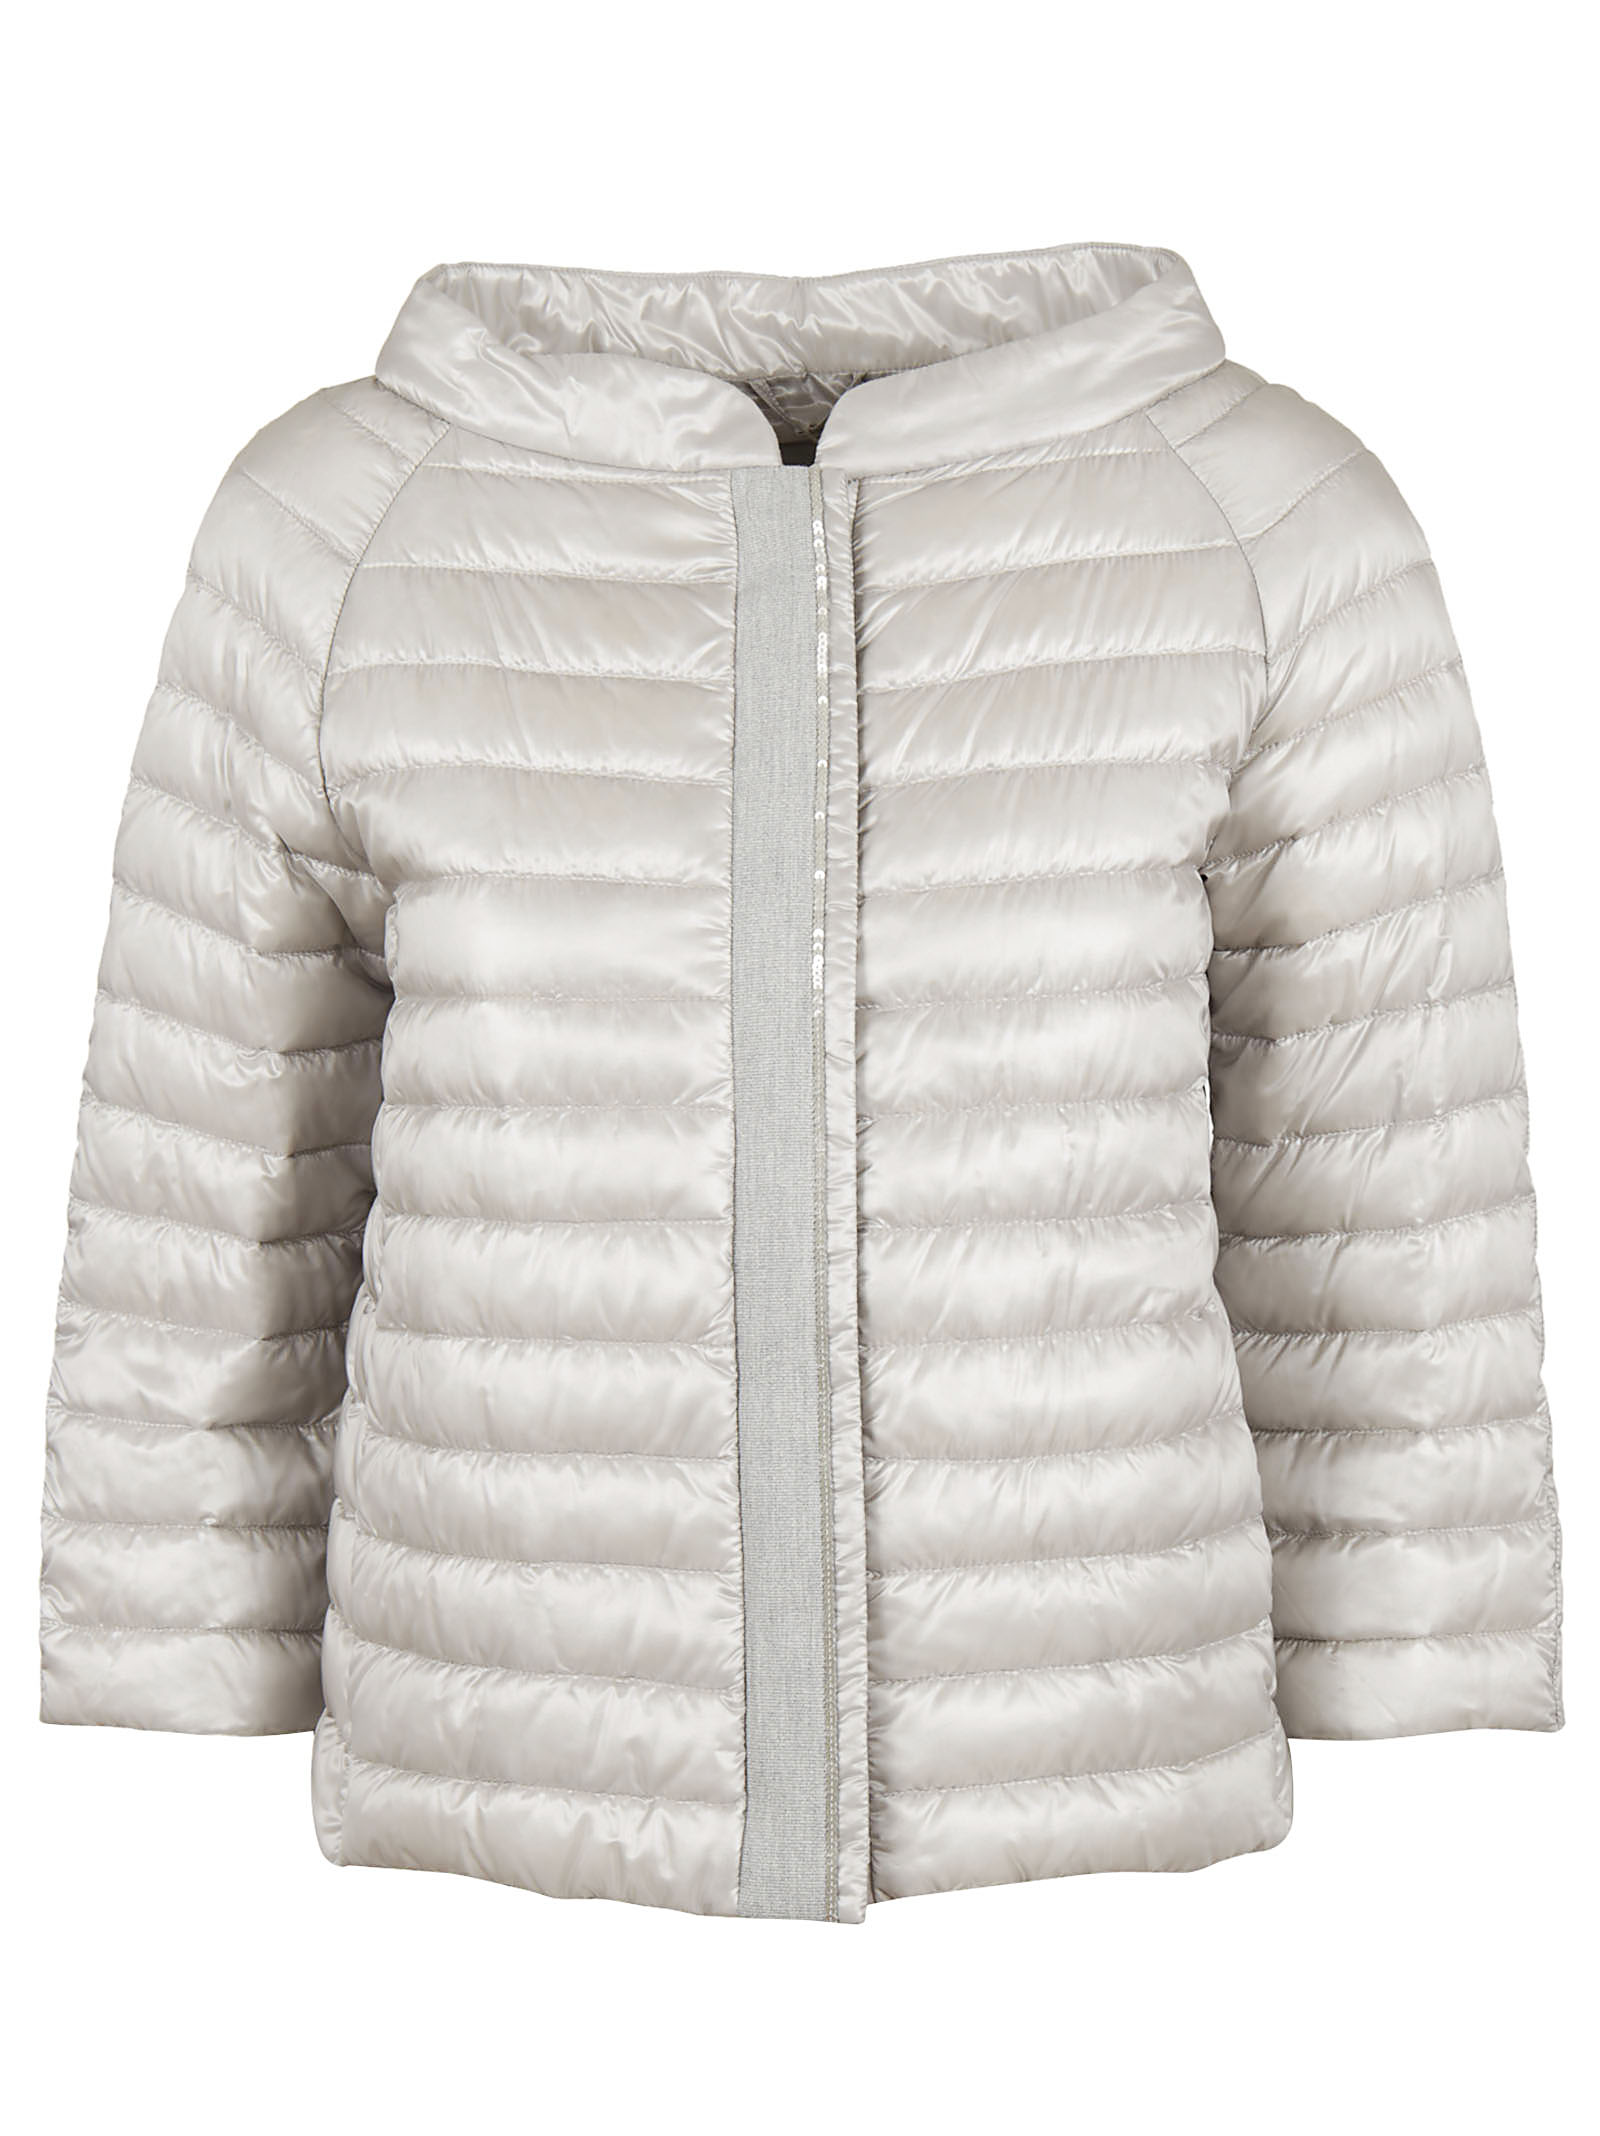 Herno Herno Zipped Puffer Jacket